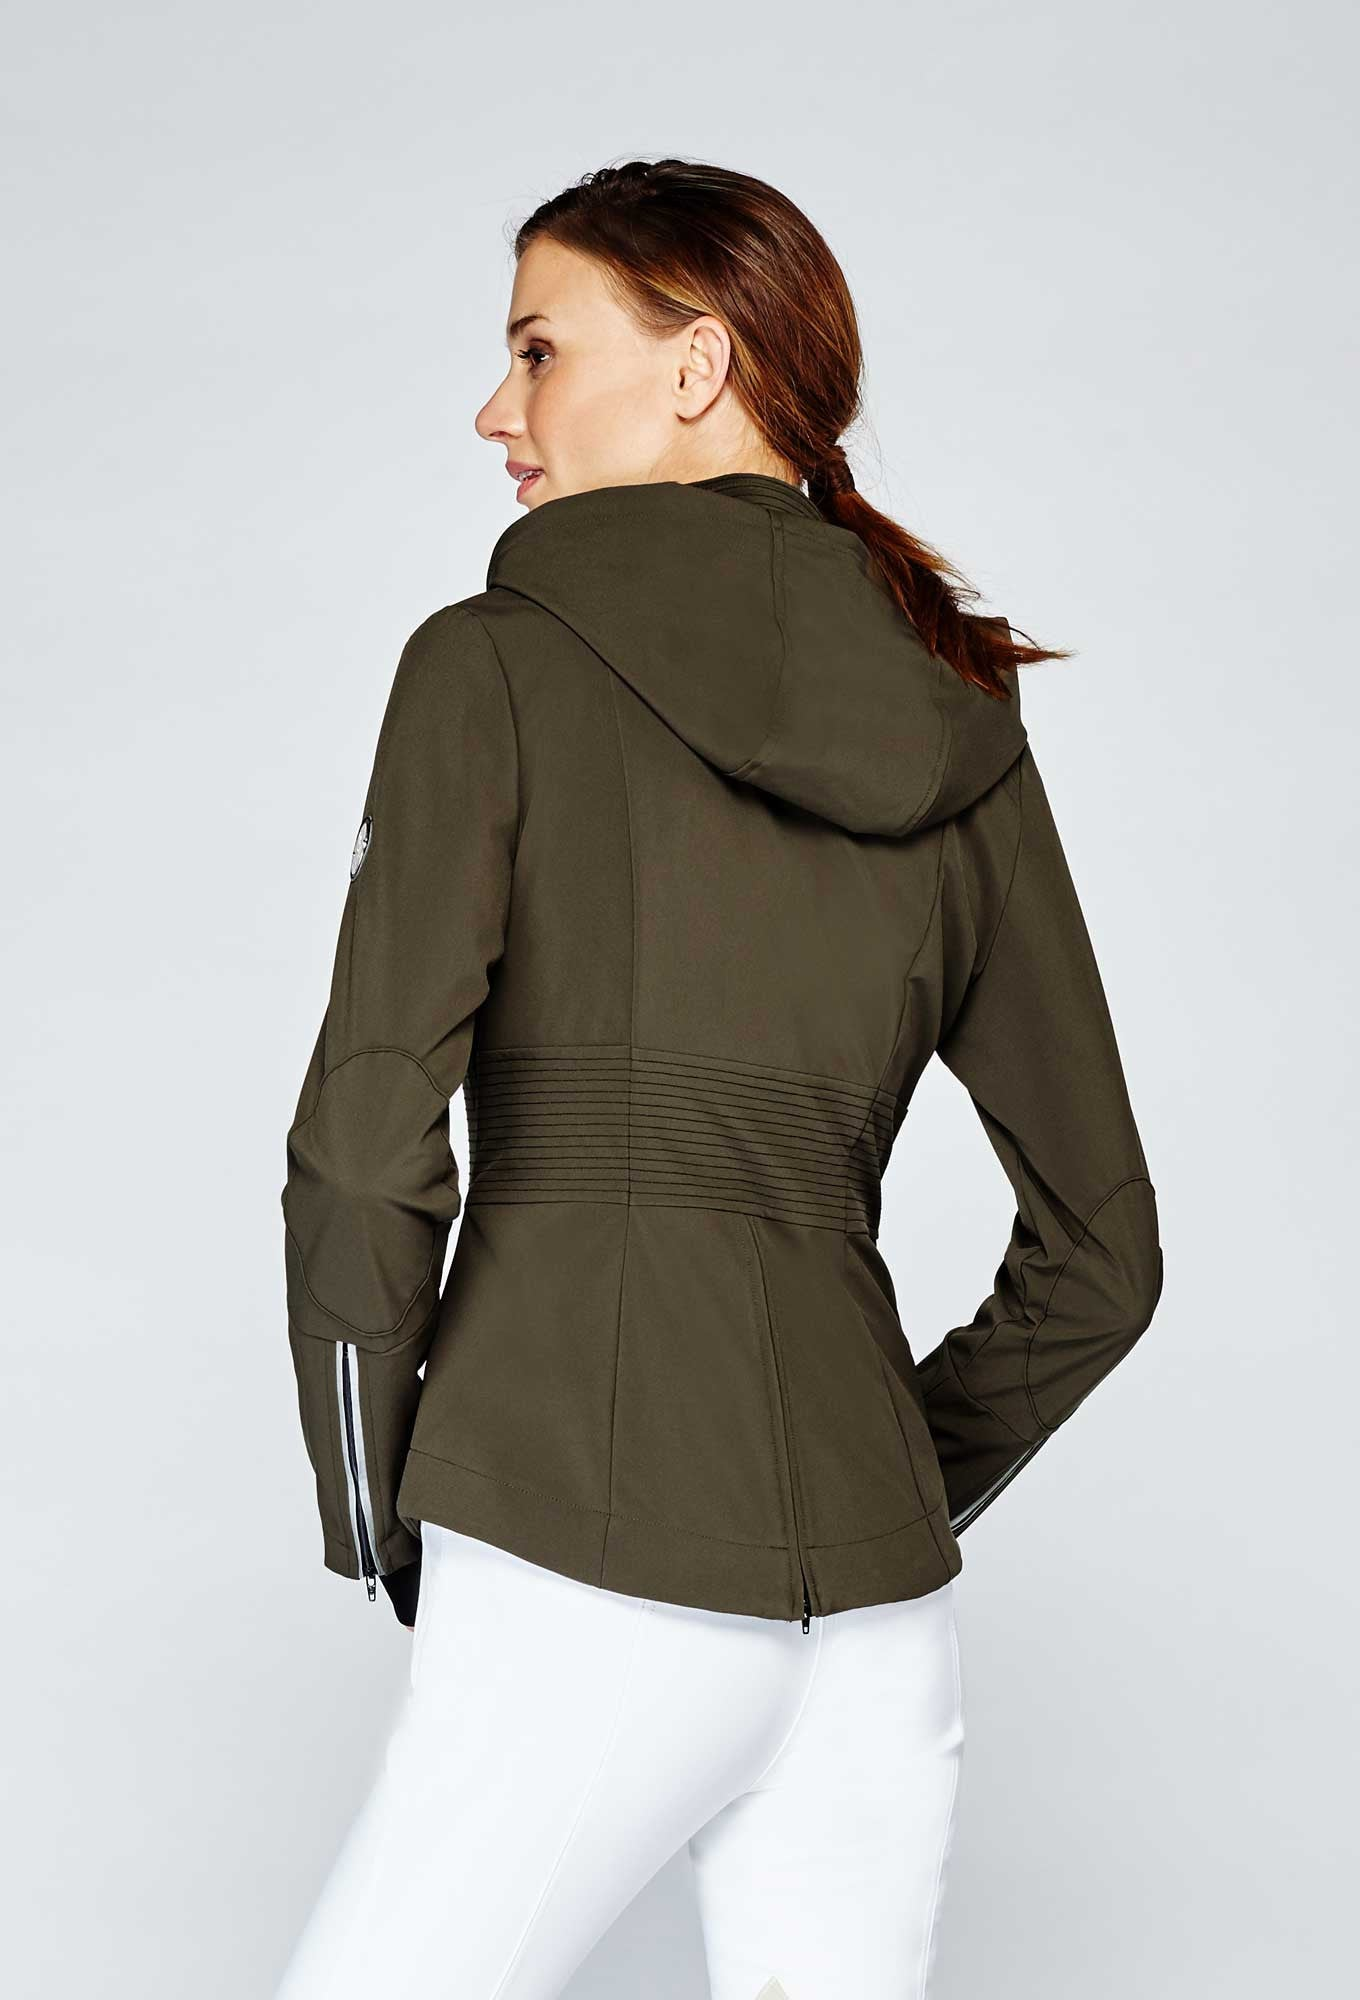 Noel Asmar Special Edition Rider Jacket - Olive - Uptown E Store